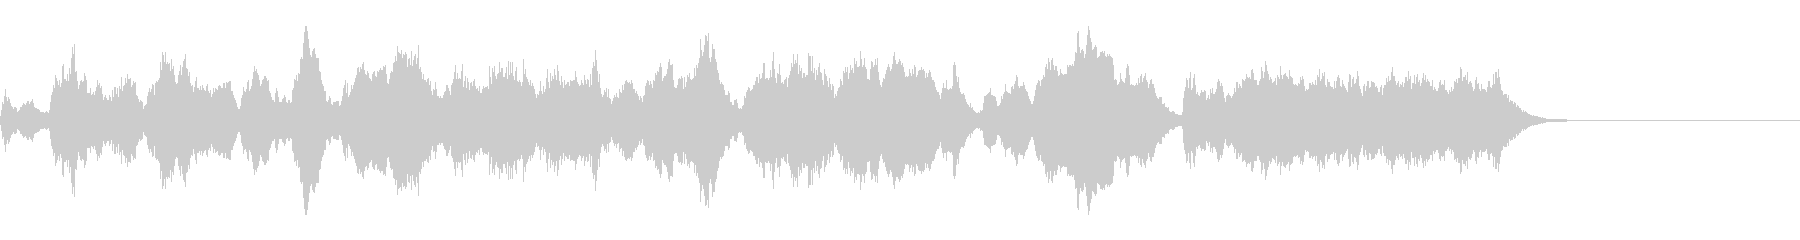 Fanfare/Jingle that achieves the goal and sounds's unreproduced waveform